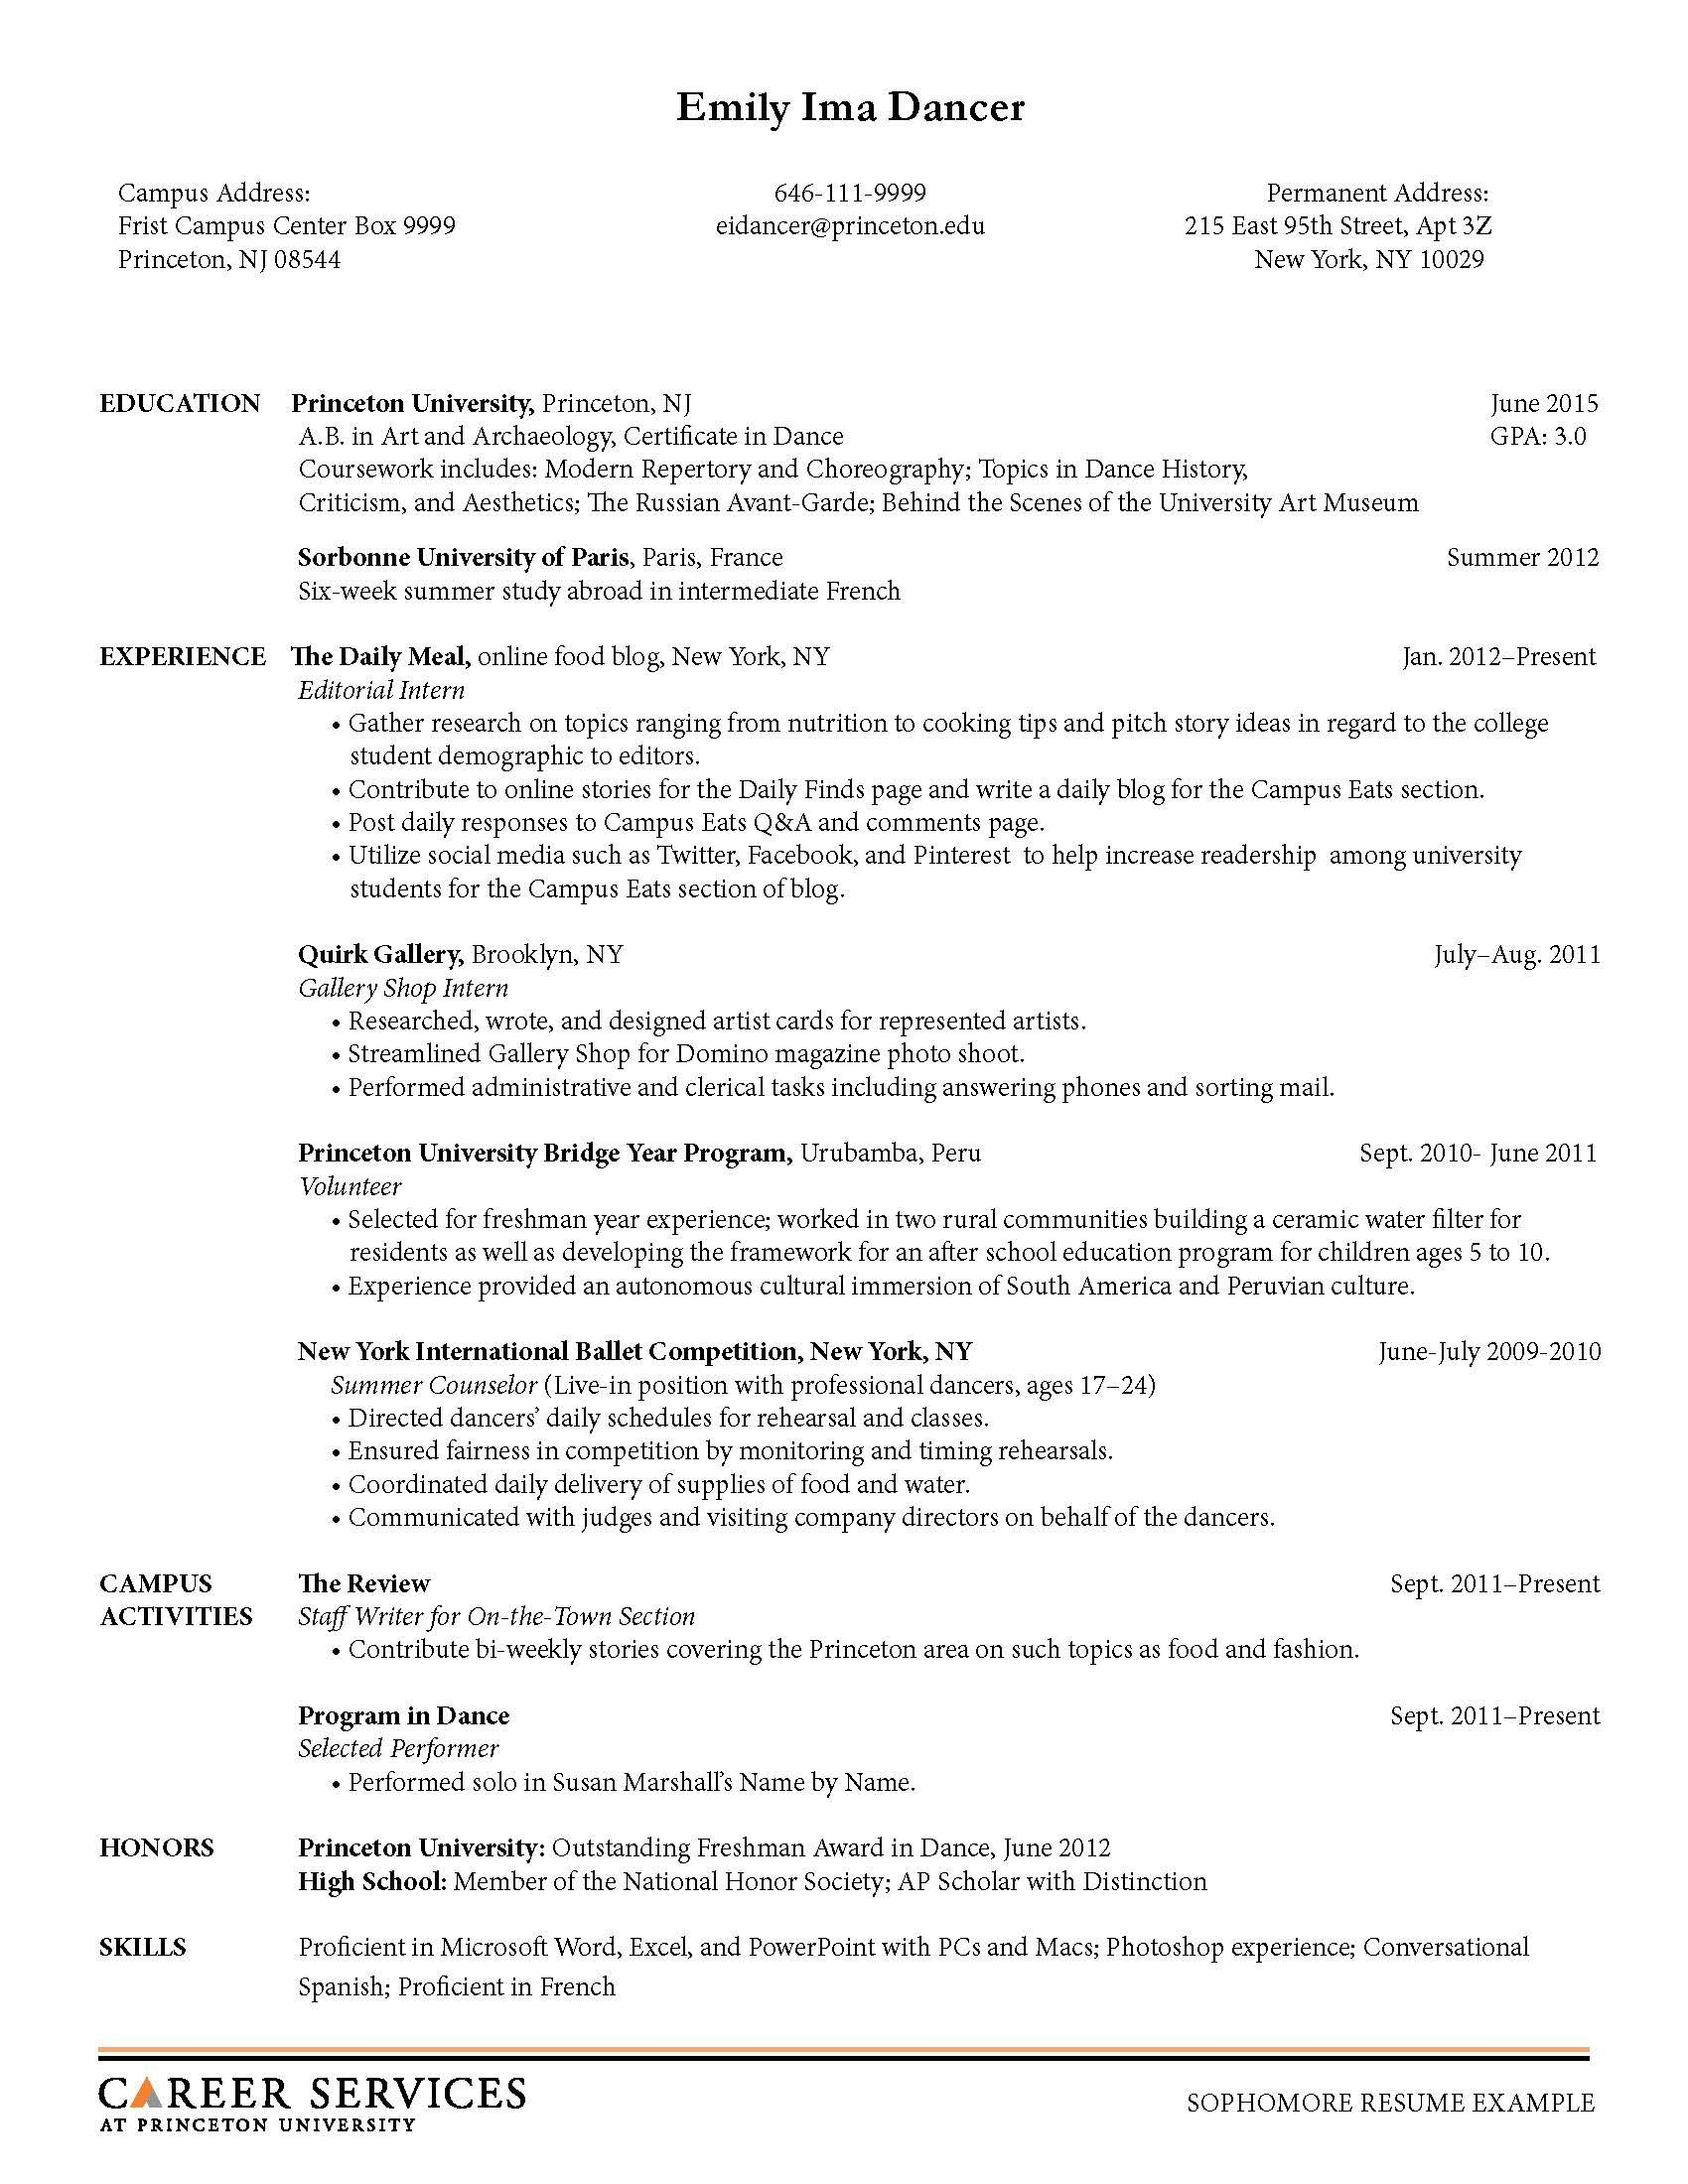 Picnictoimpeachus  Sweet Sample Resume Resume And Career On Pinterest With Inspiring Resume Soft Skills Besides High Schooler Resume Furthermore How To Write An Acting Resume With Enchanting Sap Resume Also Consulting Resume Examples In Addition Assistant Manager Resume Sample And Resume Template High School Student As Well As Resume For Entry Level Additionally Maintenance Manager Resume From Pinterestcom With Picnictoimpeachus  Inspiring Sample Resume Resume And Career On Pinterest With Enchanting Resume Soft Skills Besides High Schooler Resume Furthermore How To Write An Acting Resume And Sweet Sap Resume Also Consulting Resume Examples In Addition Assistant Manager Resume Sample From Pinterestcom